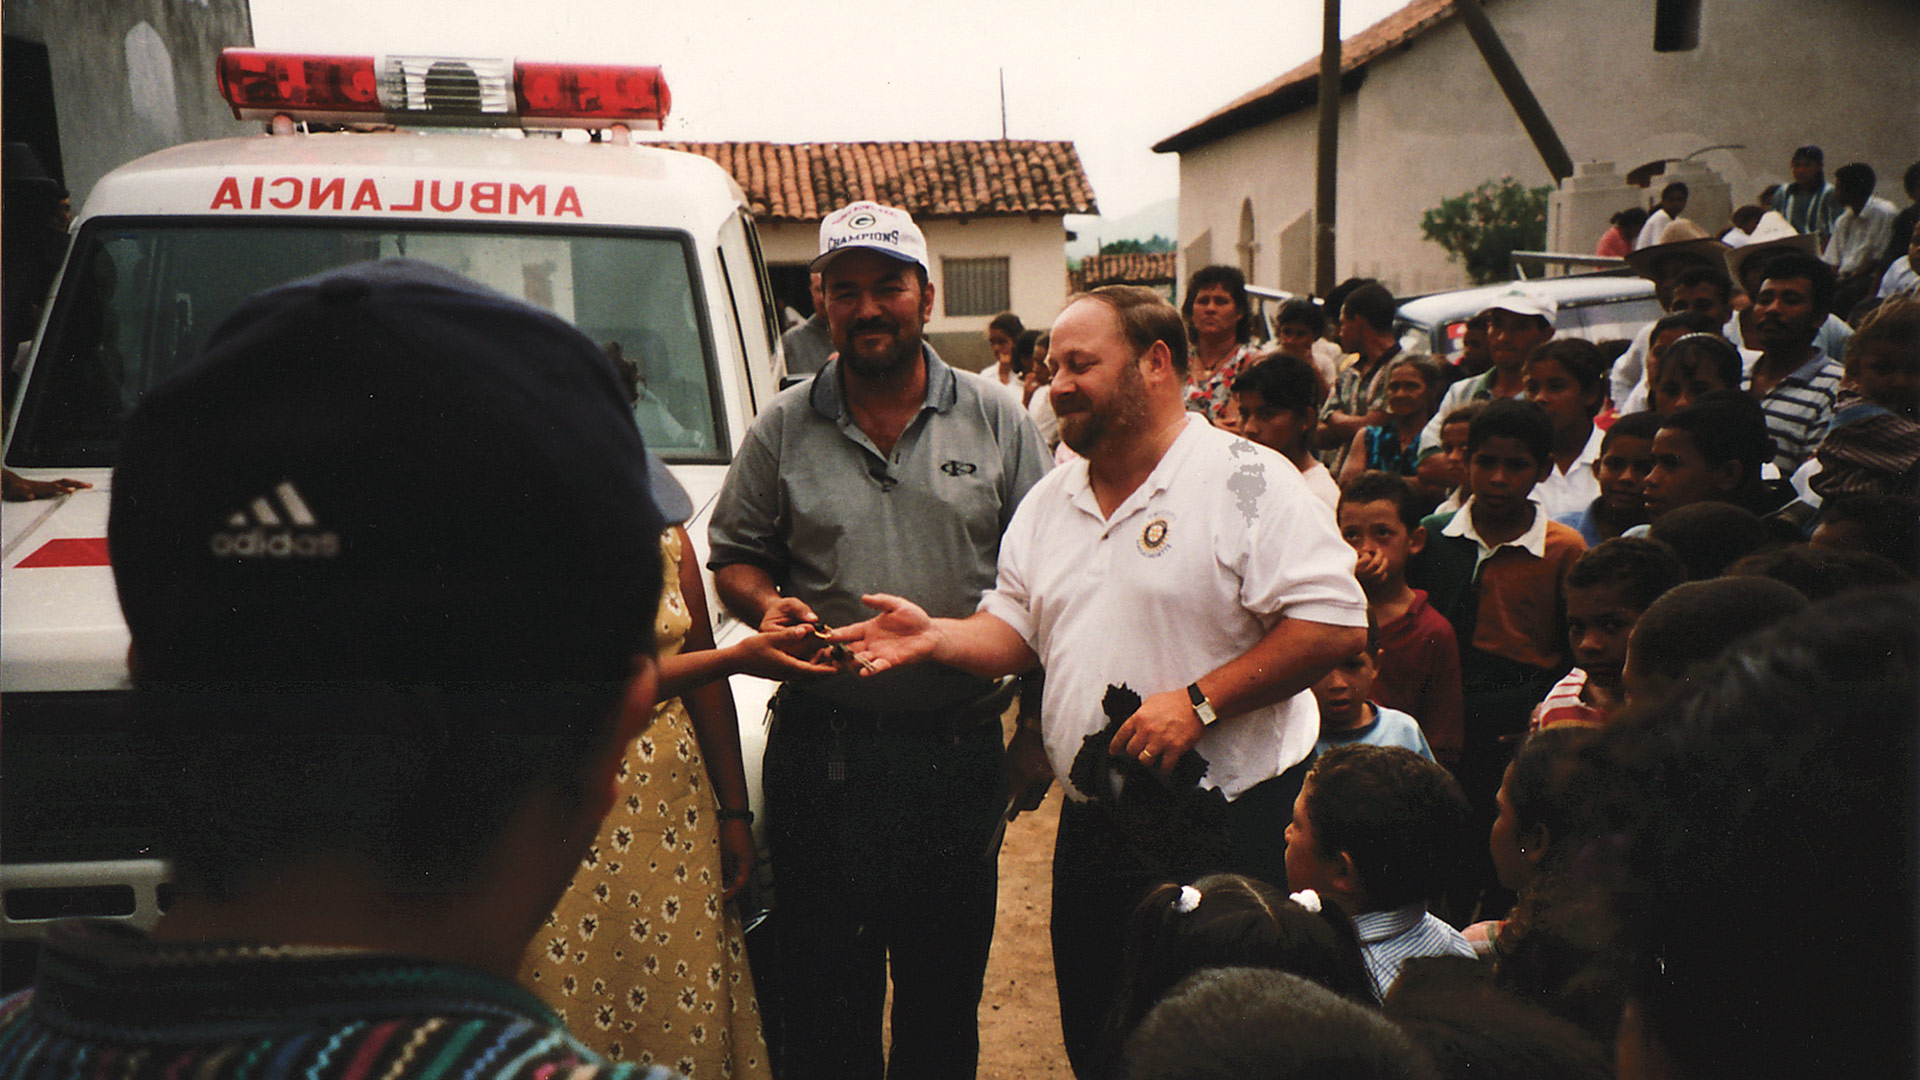 Joe Peters played a large role in bringing a new ambulance to the Honduran village of Guayape